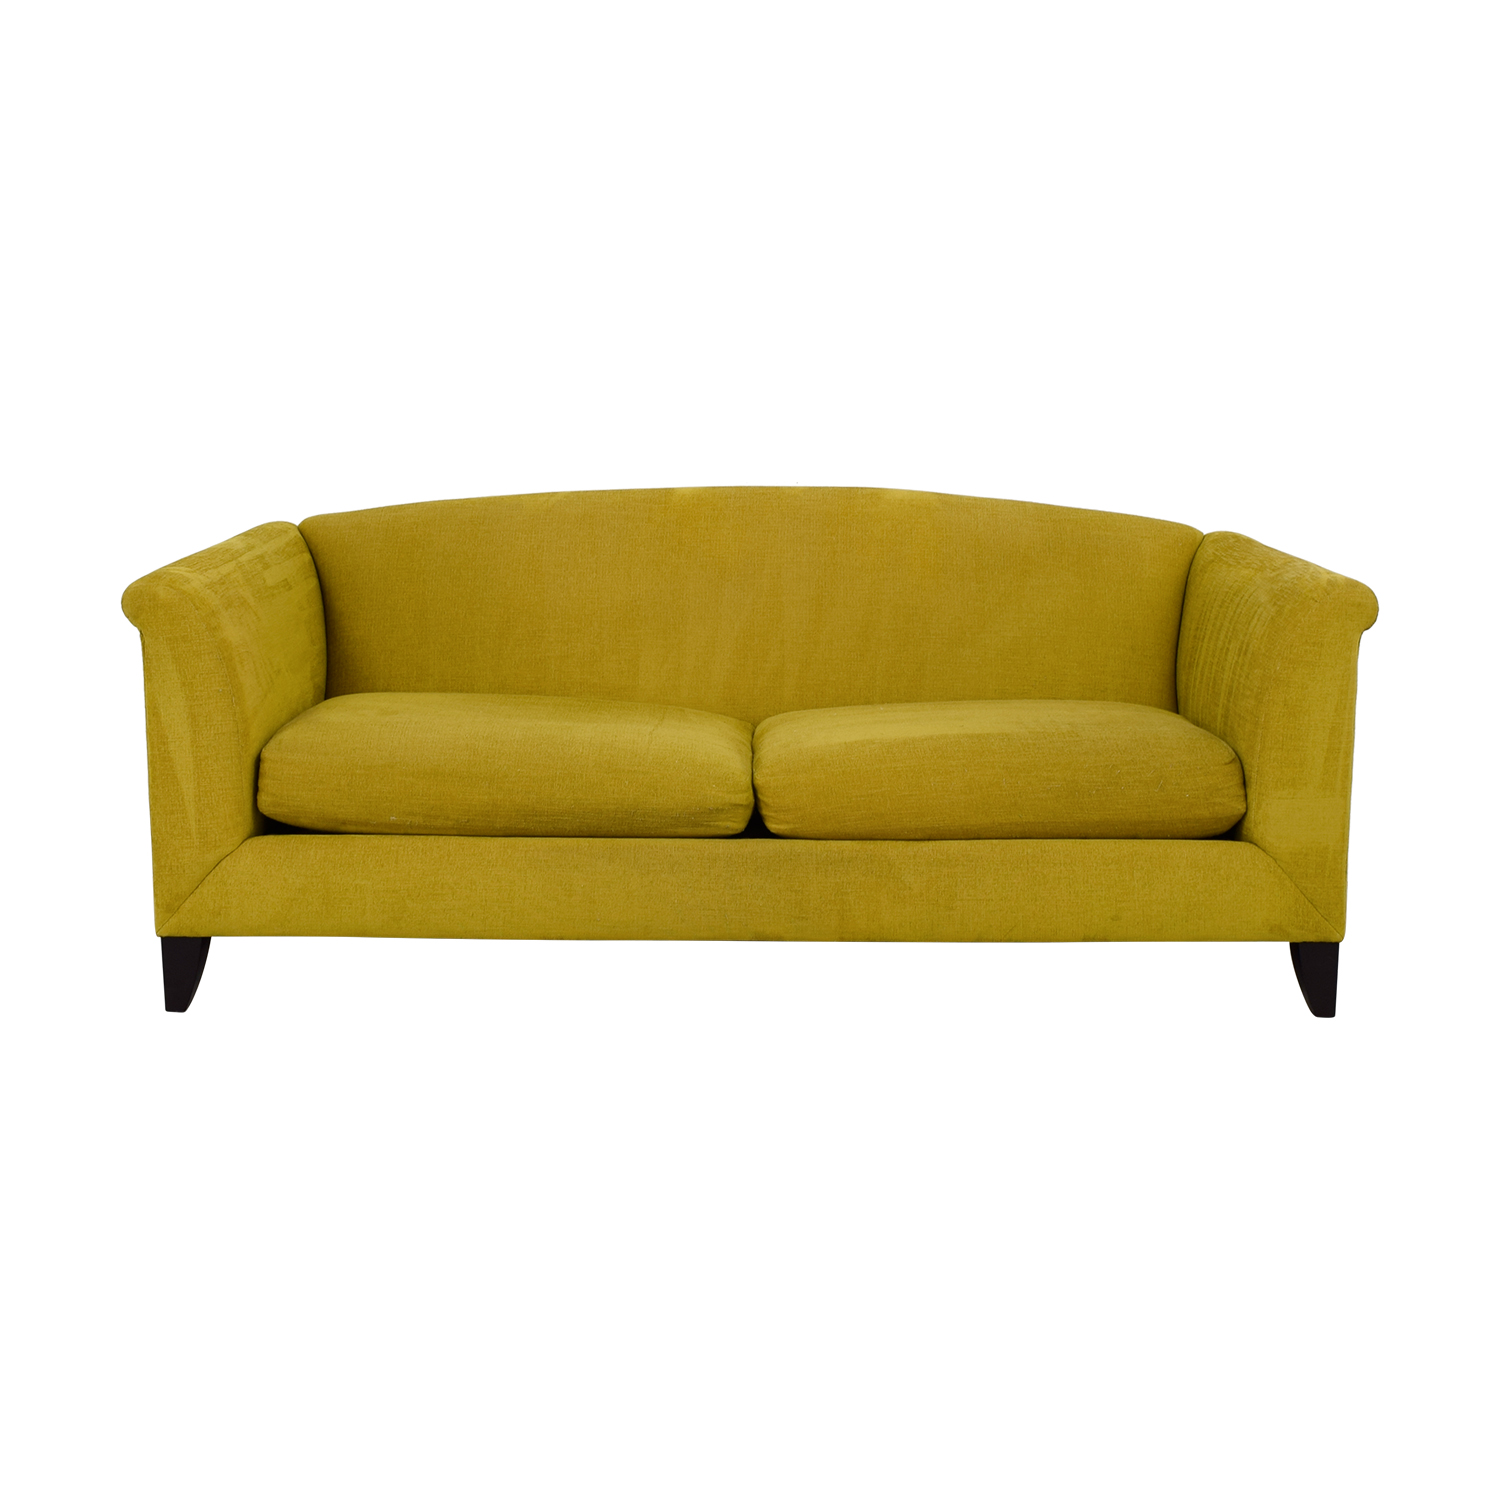 48% OFF - Crate & Barrel Crate & Barrel Silhouette Yellow Two-Cushion Sofa  / Sofas